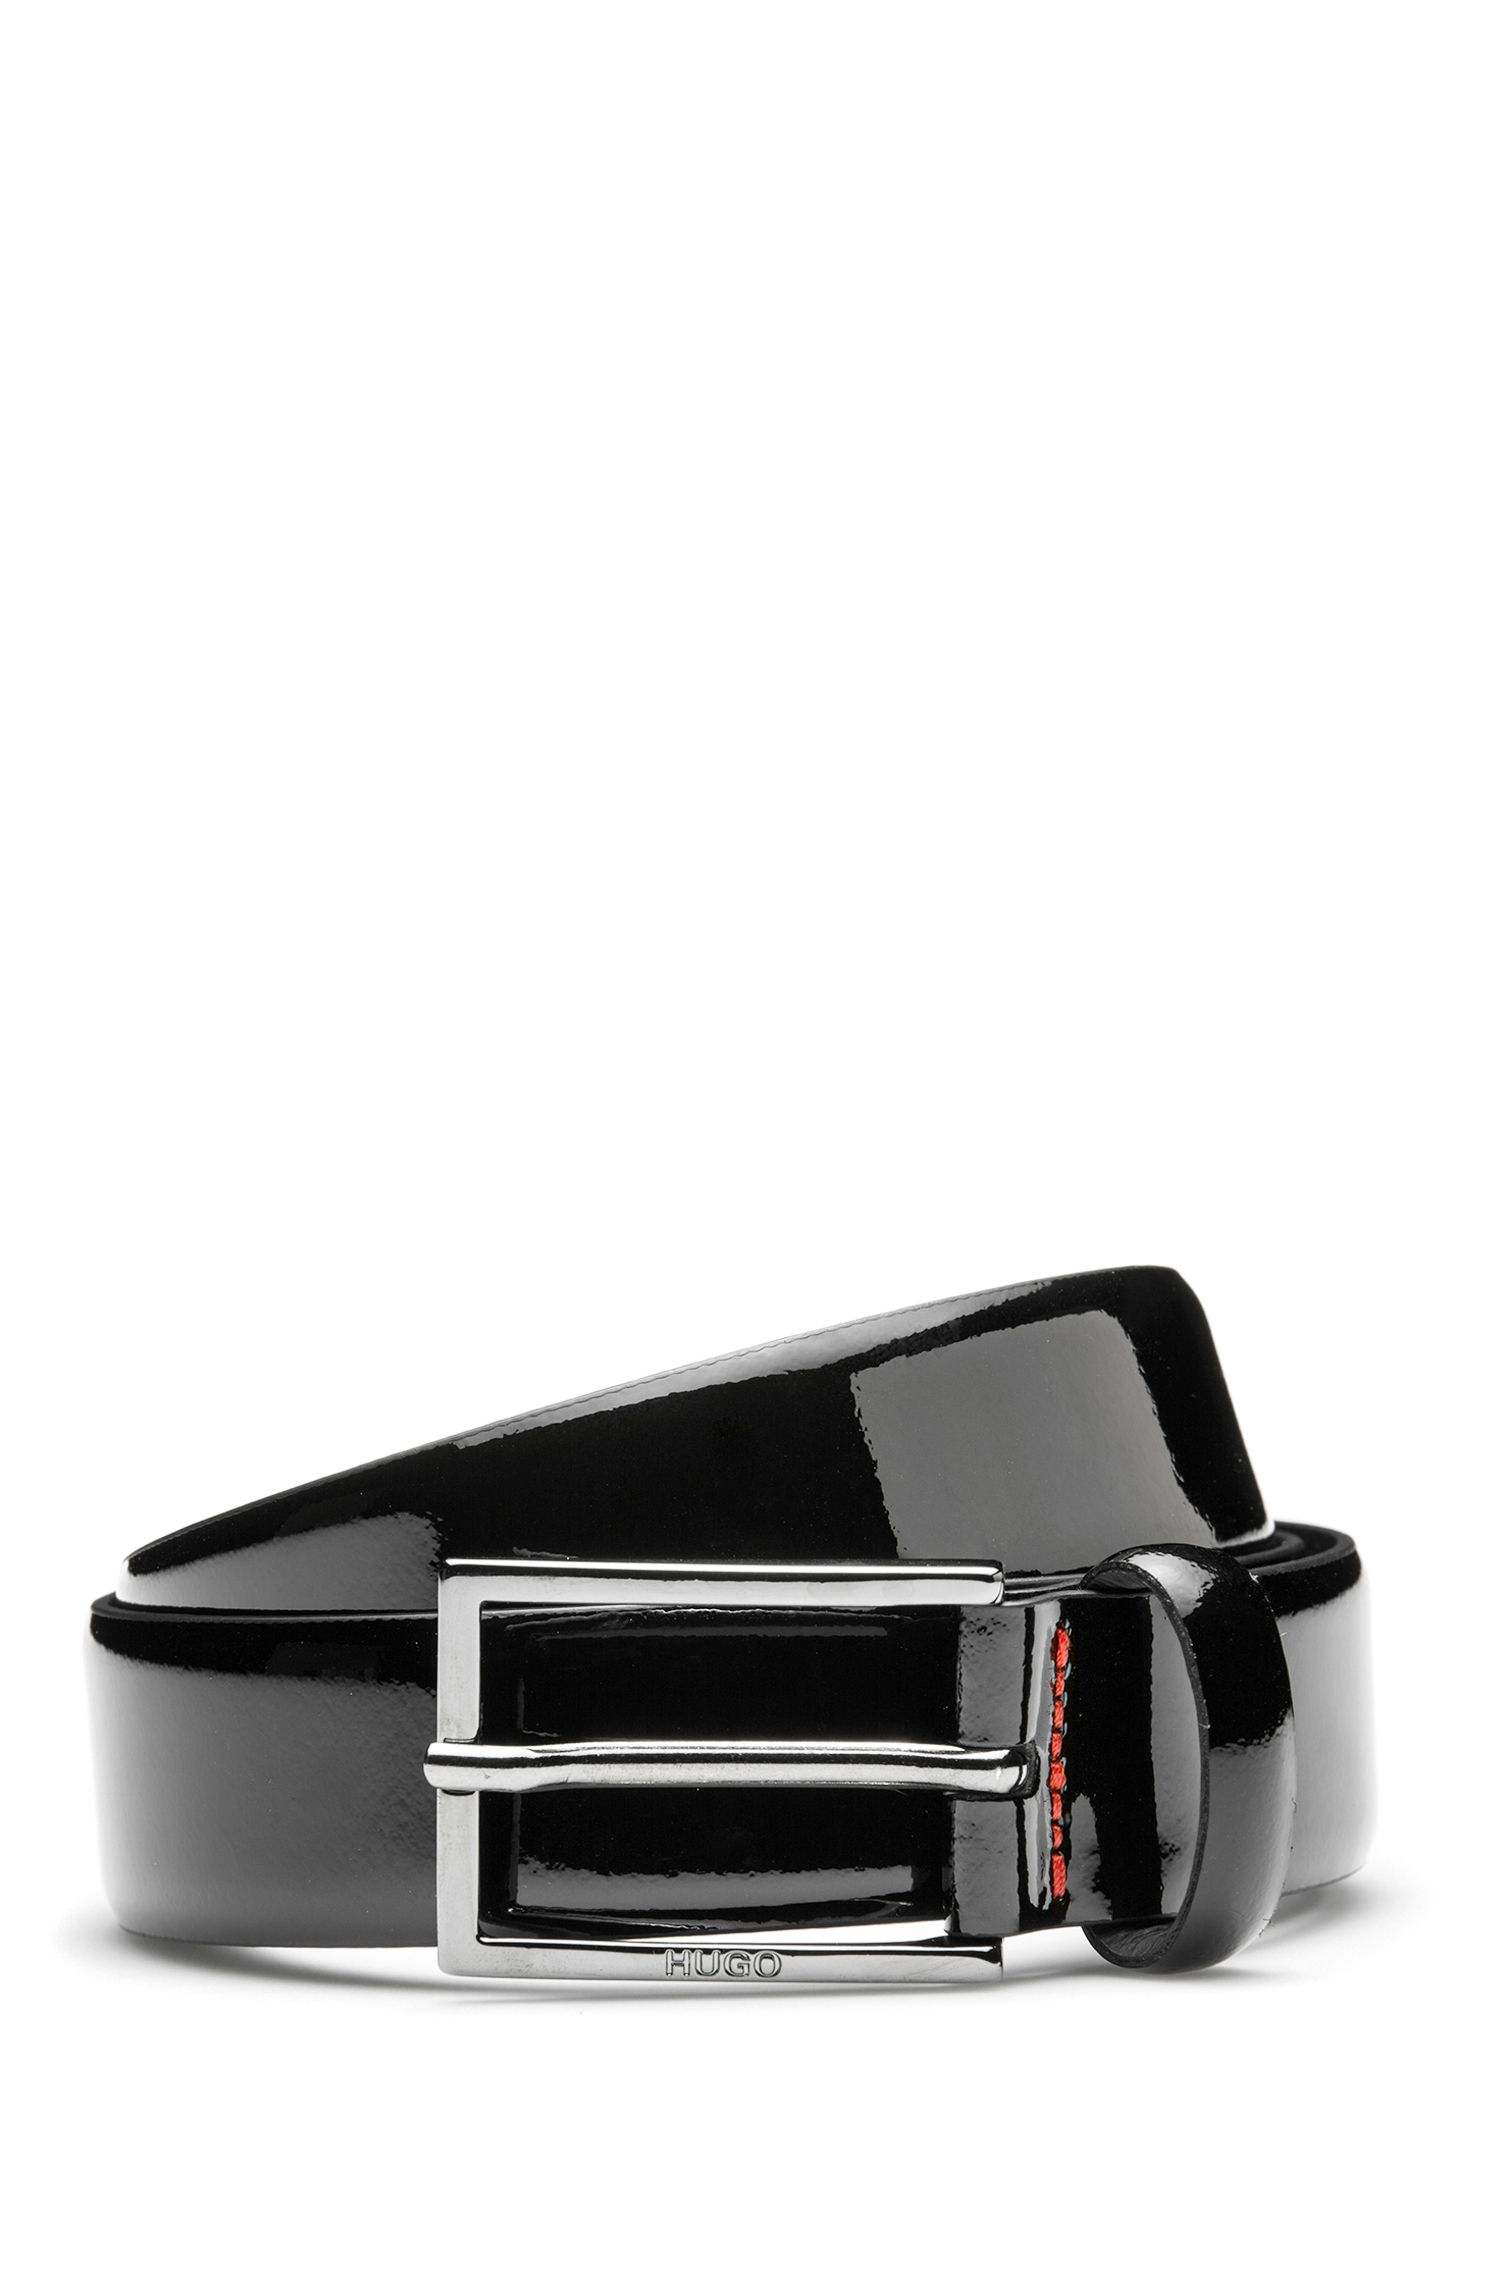 Patent Leather Belt | Gavino